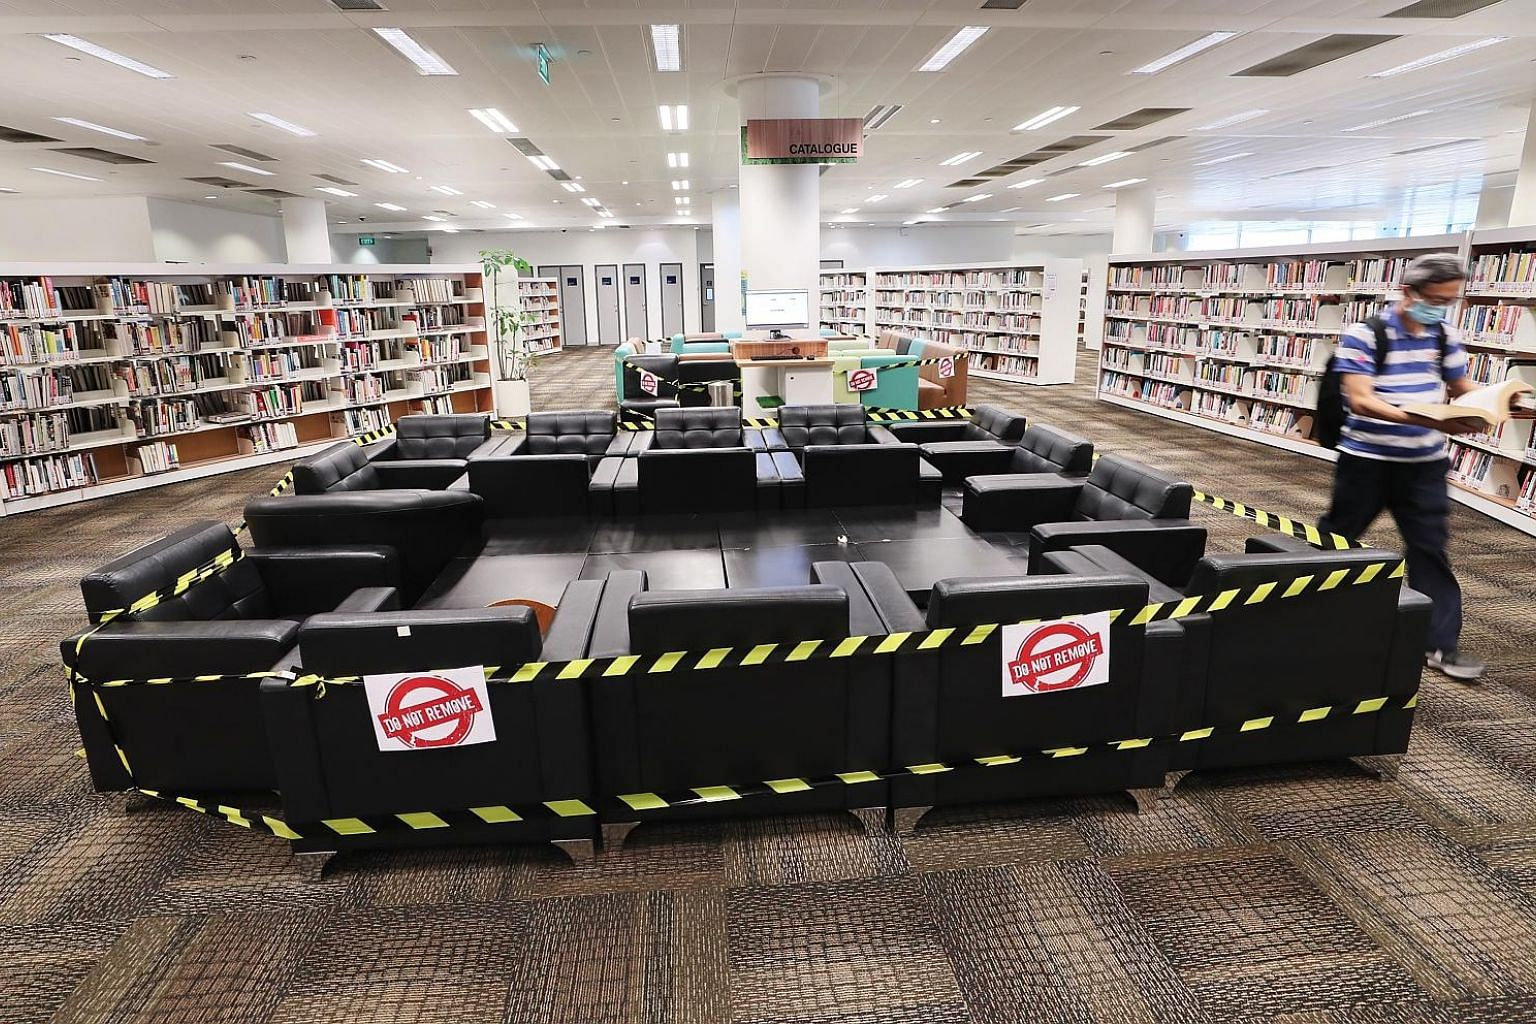 The Jurong Regional Library. During the circuit breaker, the National Library Board (NLB) seized the opportunity to experiment and try out new ideas, and drew much encouragement from public responses. It helped sharpen NLB's thinking for the Librarie